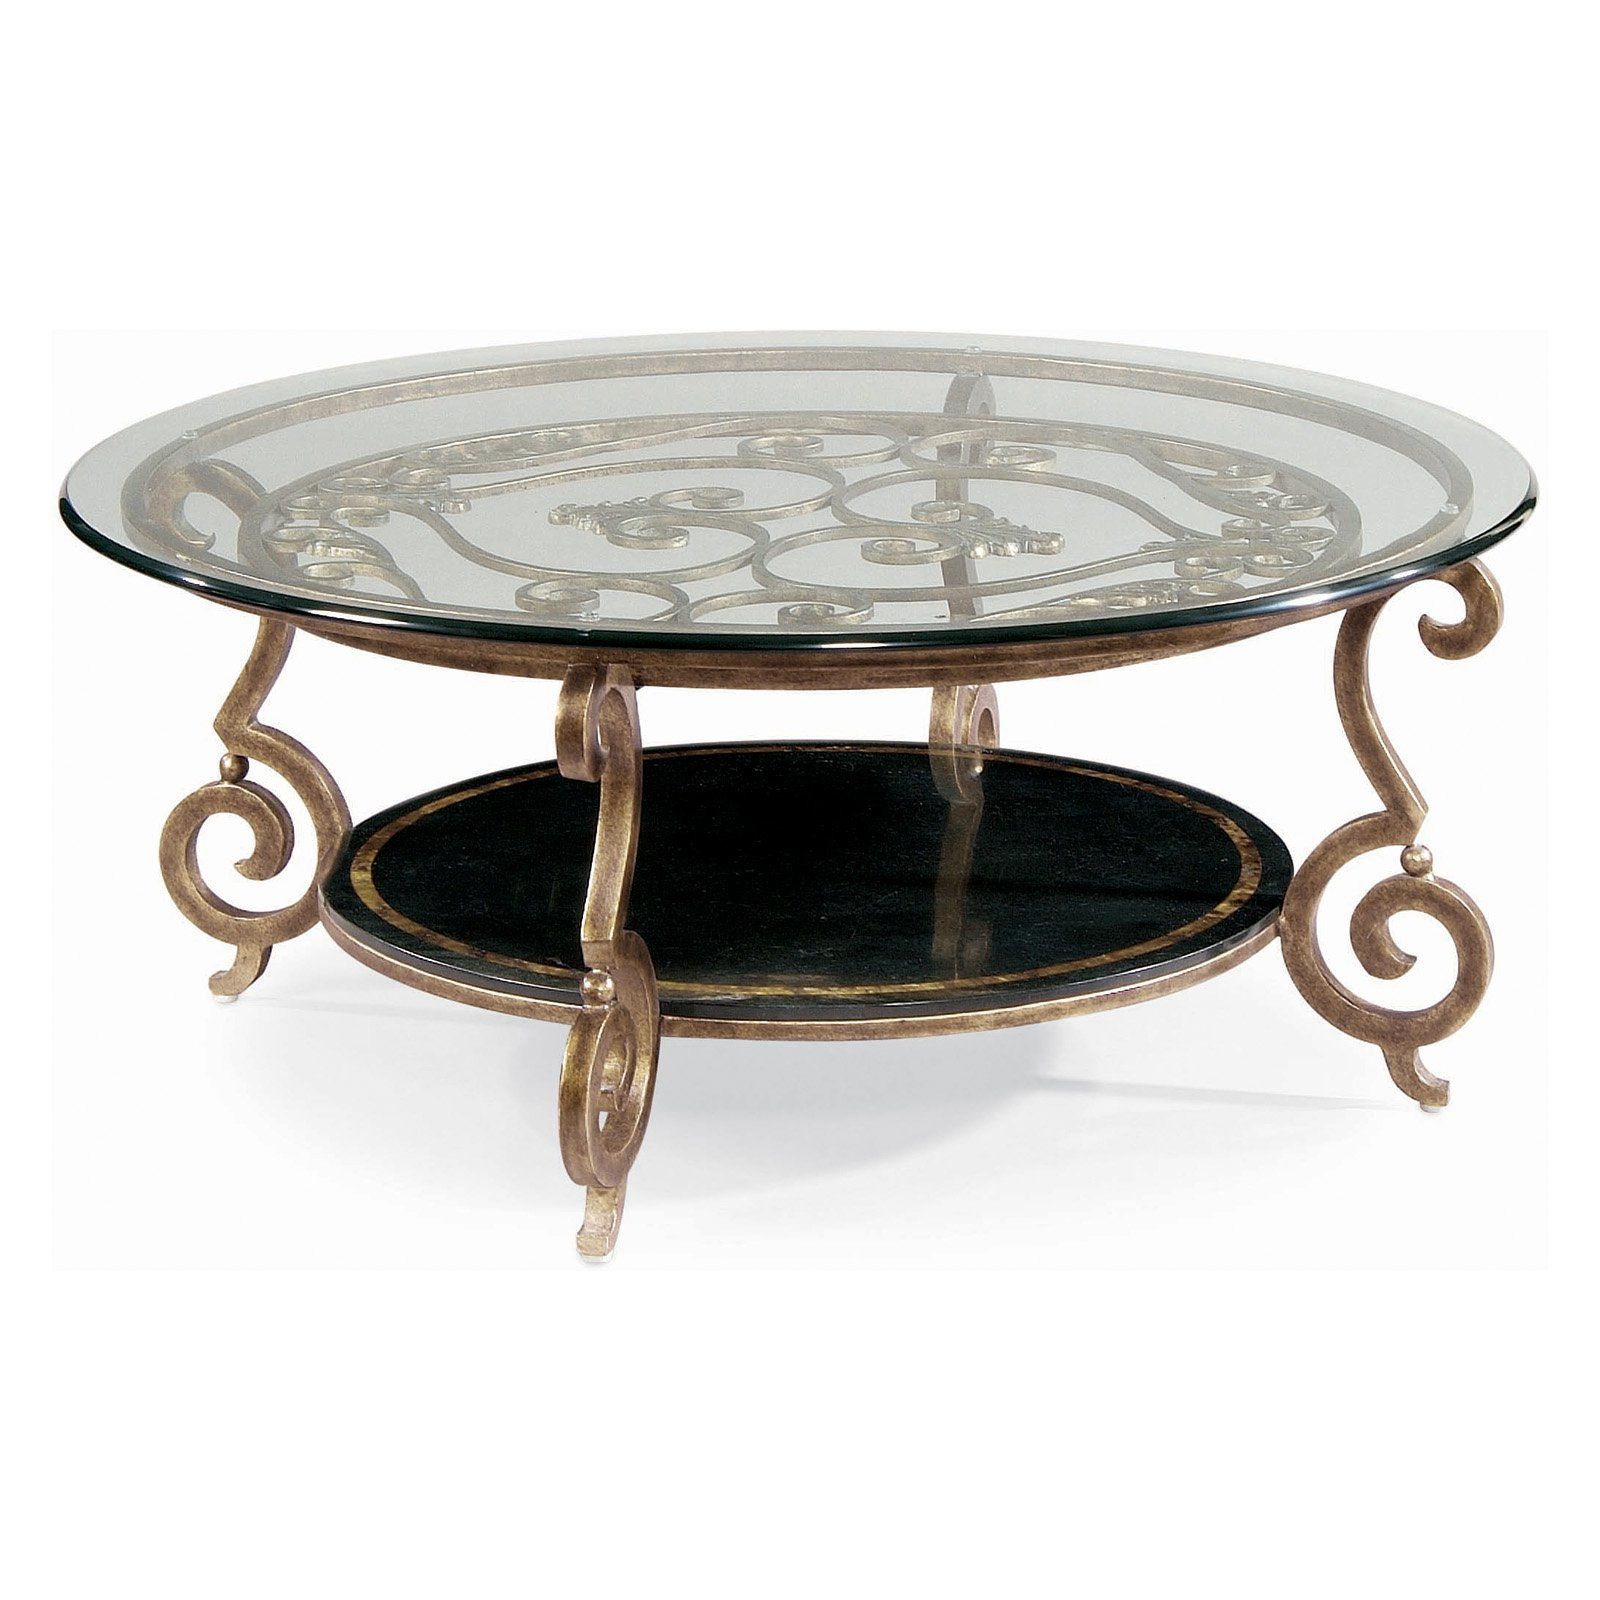 Bernhardt Zambrano Round Glass Top Coffee Table Www Hayneedle Com Coffee Table Round Cocktail Tables Glass Coffee Table [ 1600 x 1600 Pixel ]